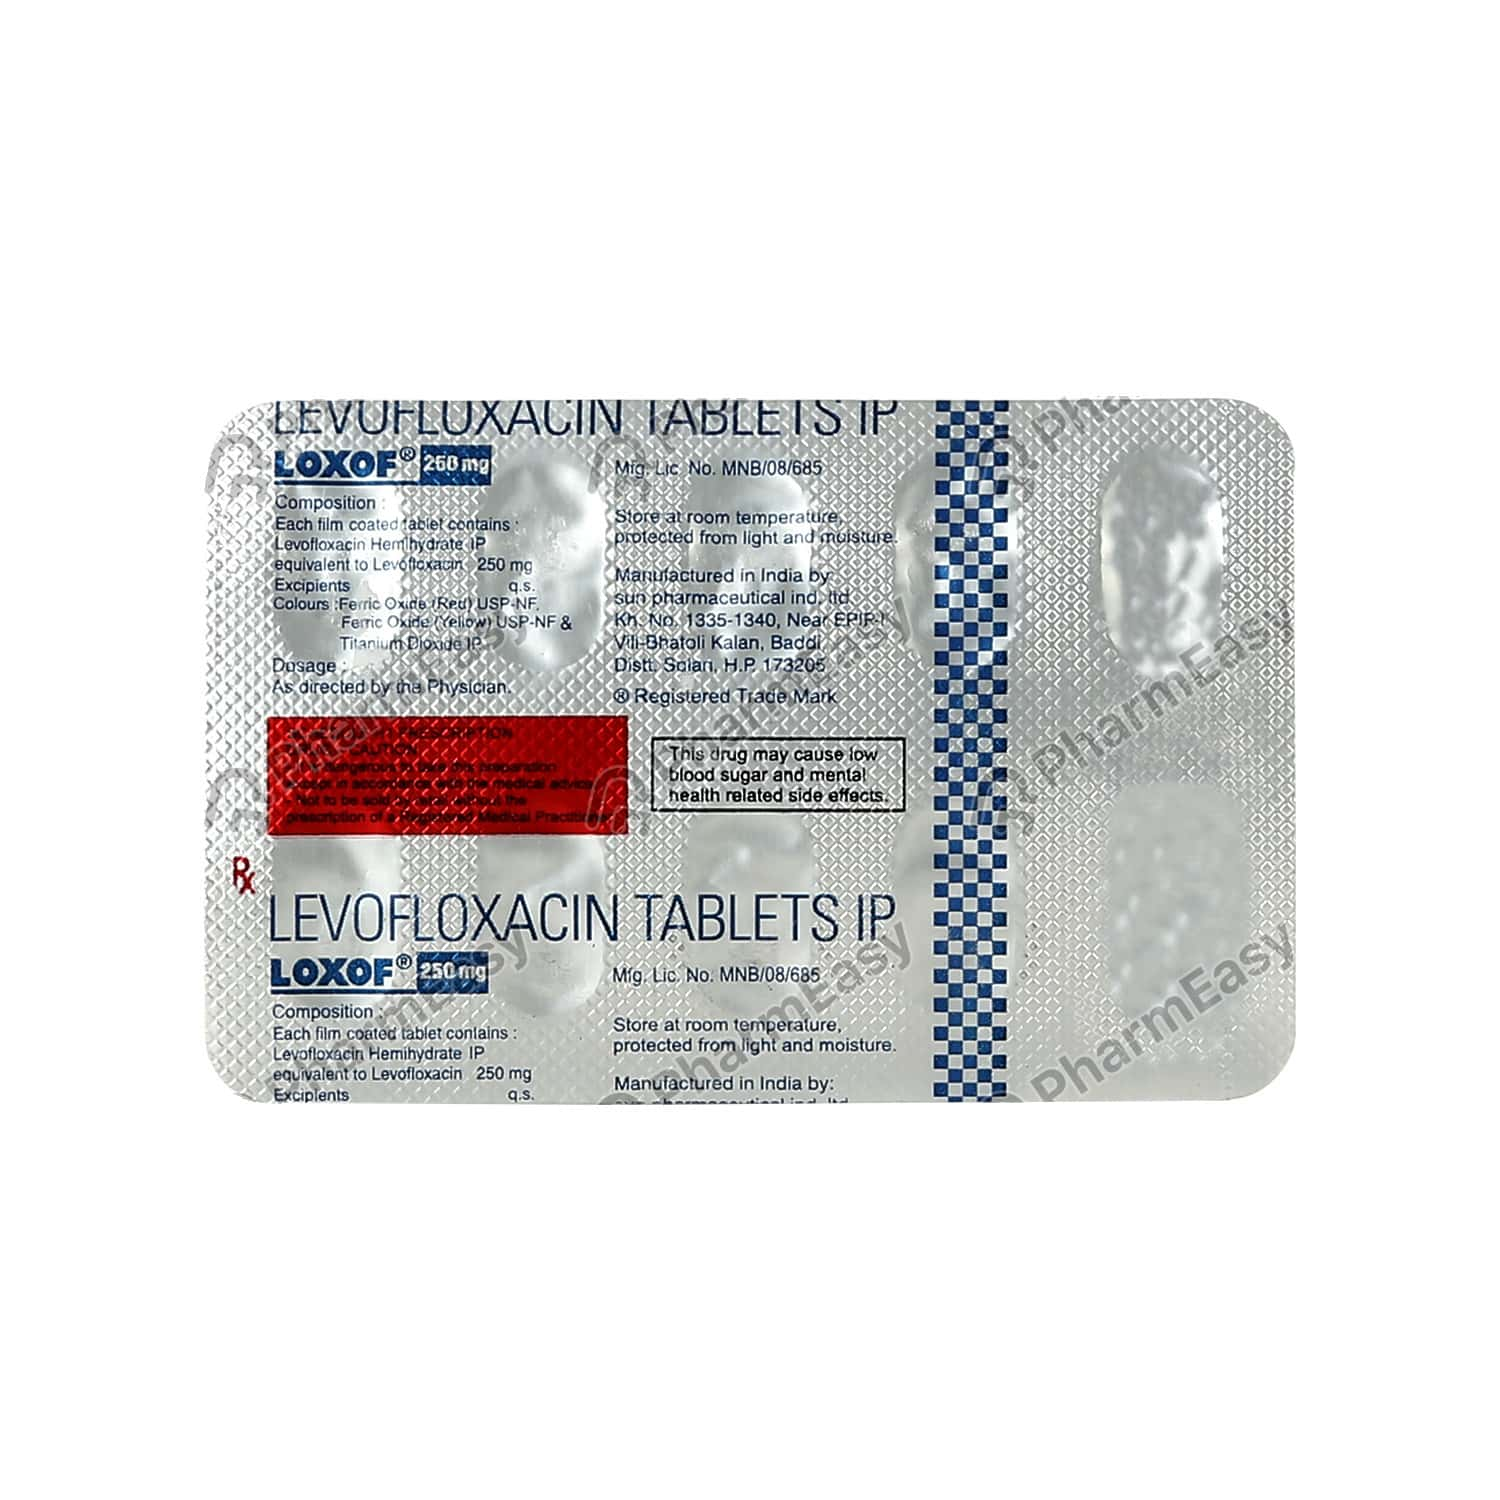 Loxof 250mg Strip Of 10 Tablets